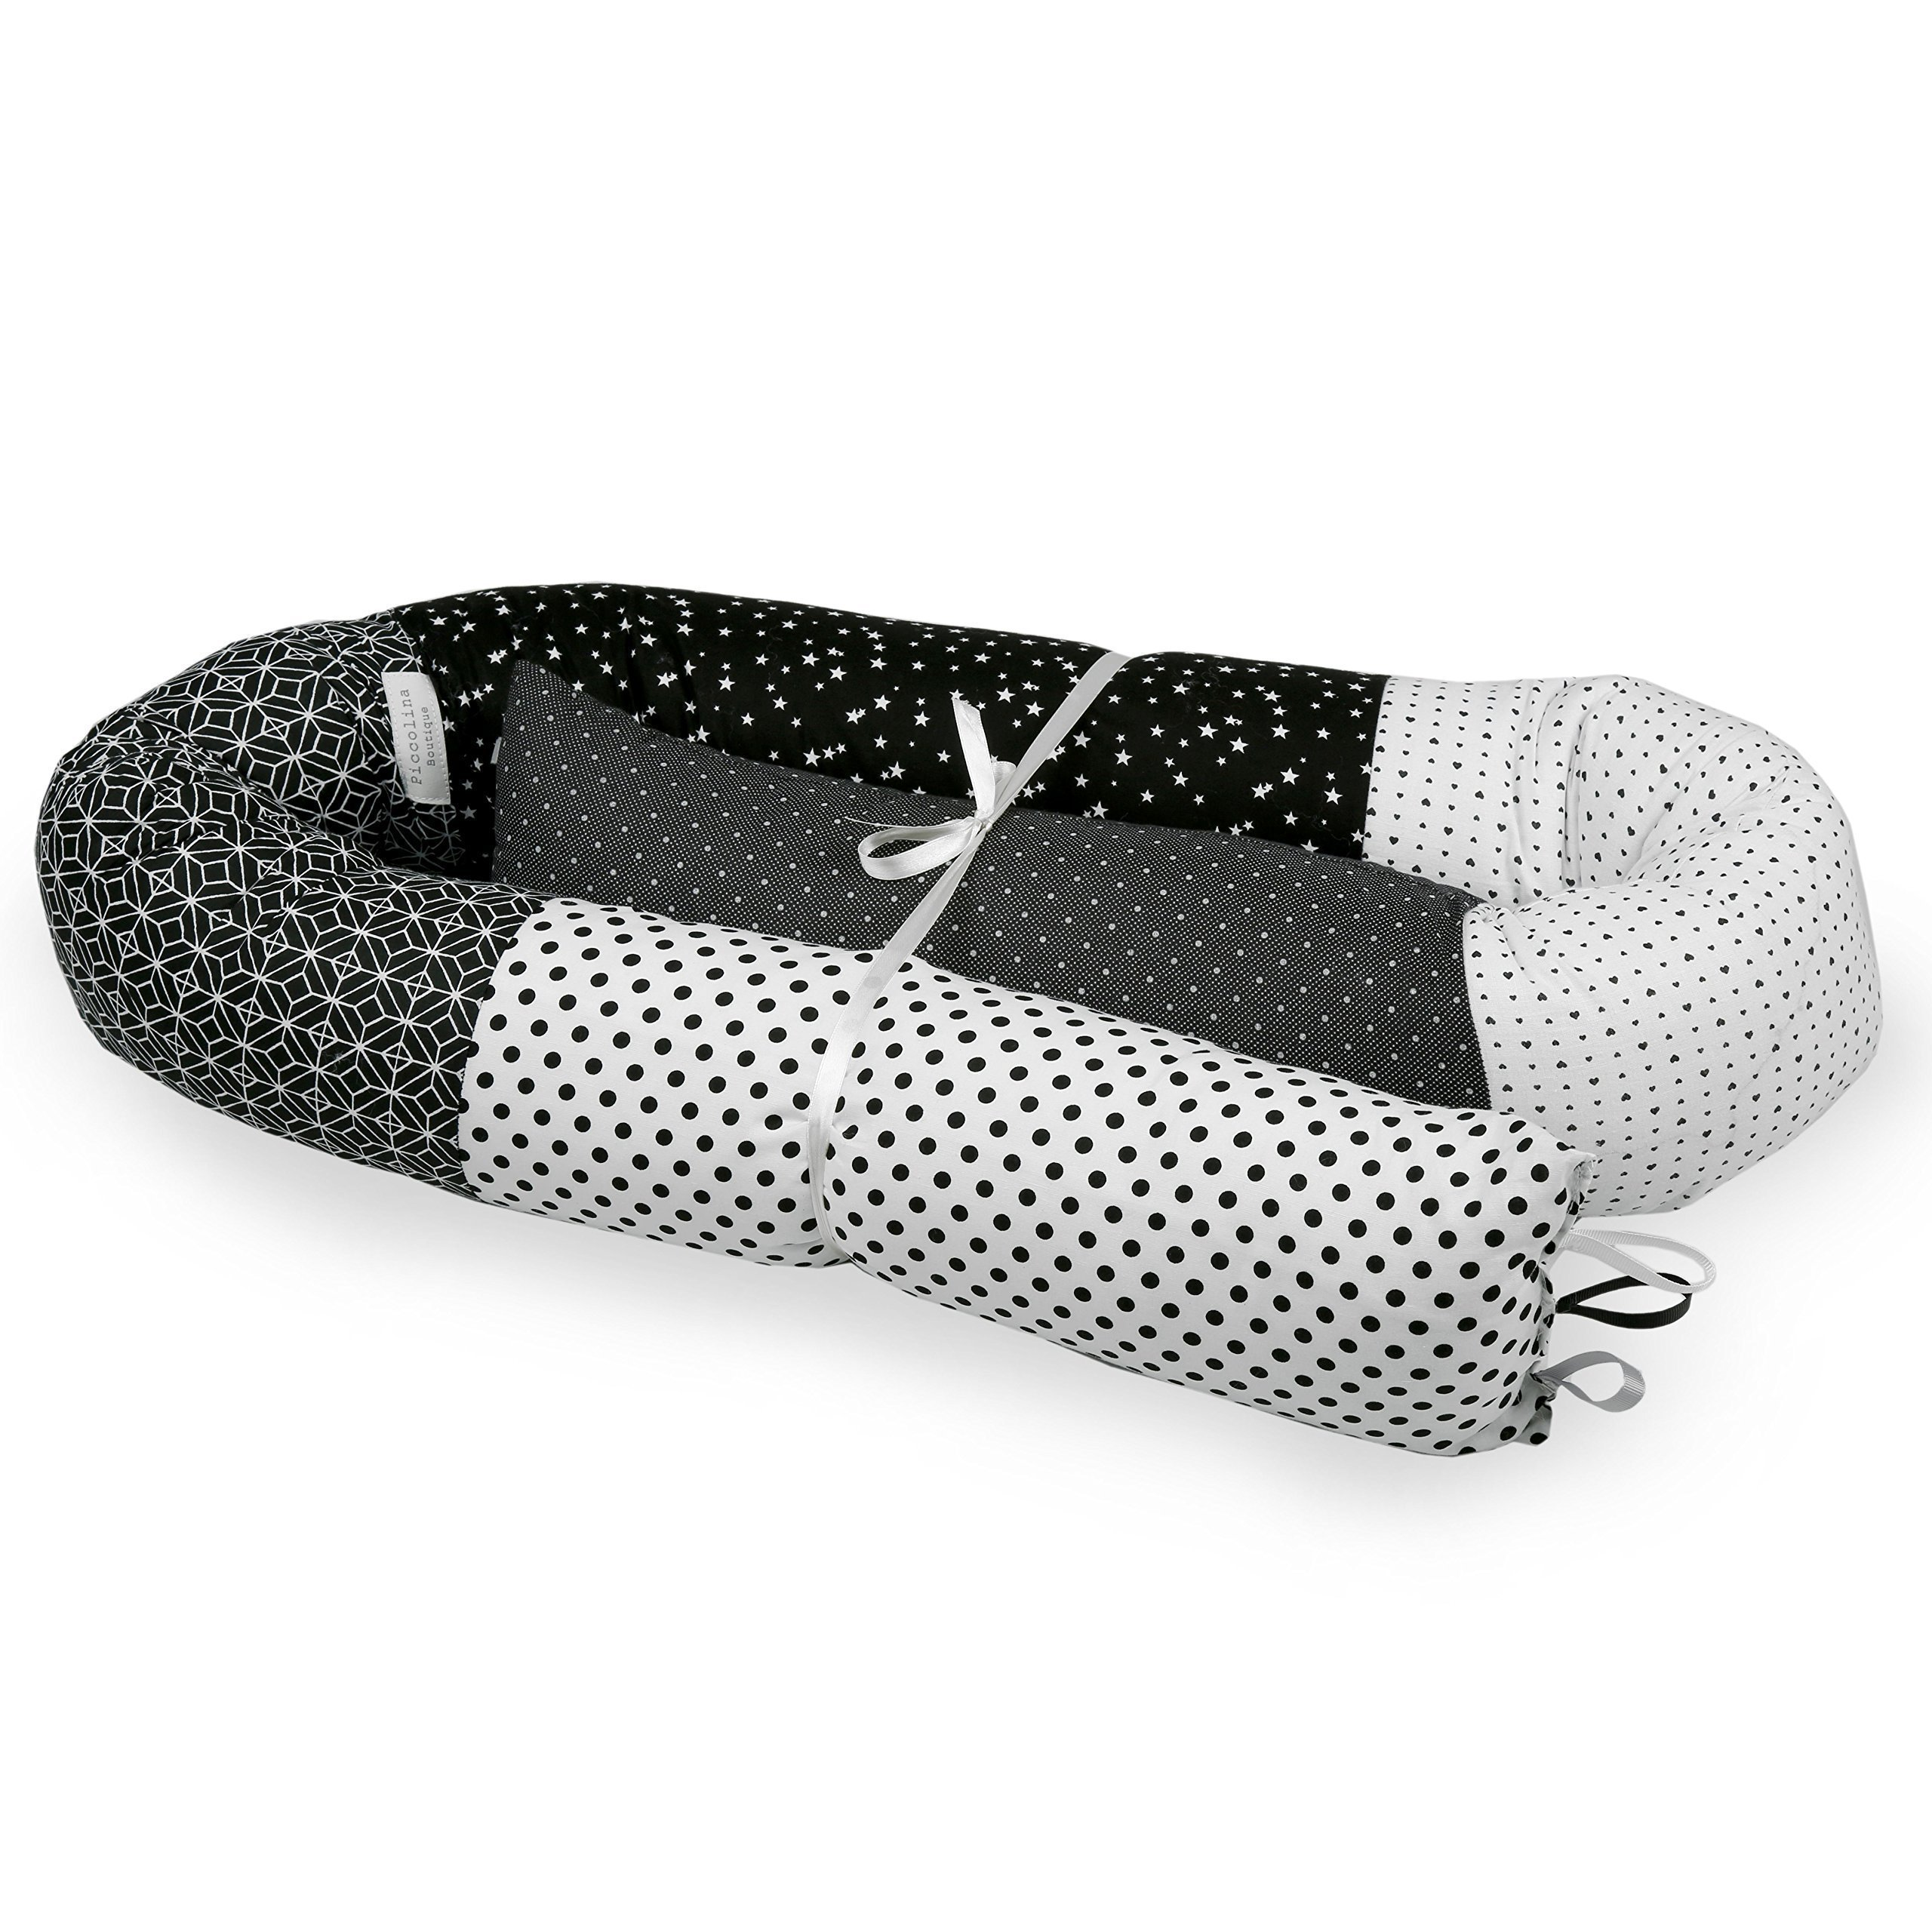 BABY ''SNAKE'' BED BUMPER FOR CRIB OR JUNIOR BEDS-Black&White,bed bumper,nursery bedding,nursery décor